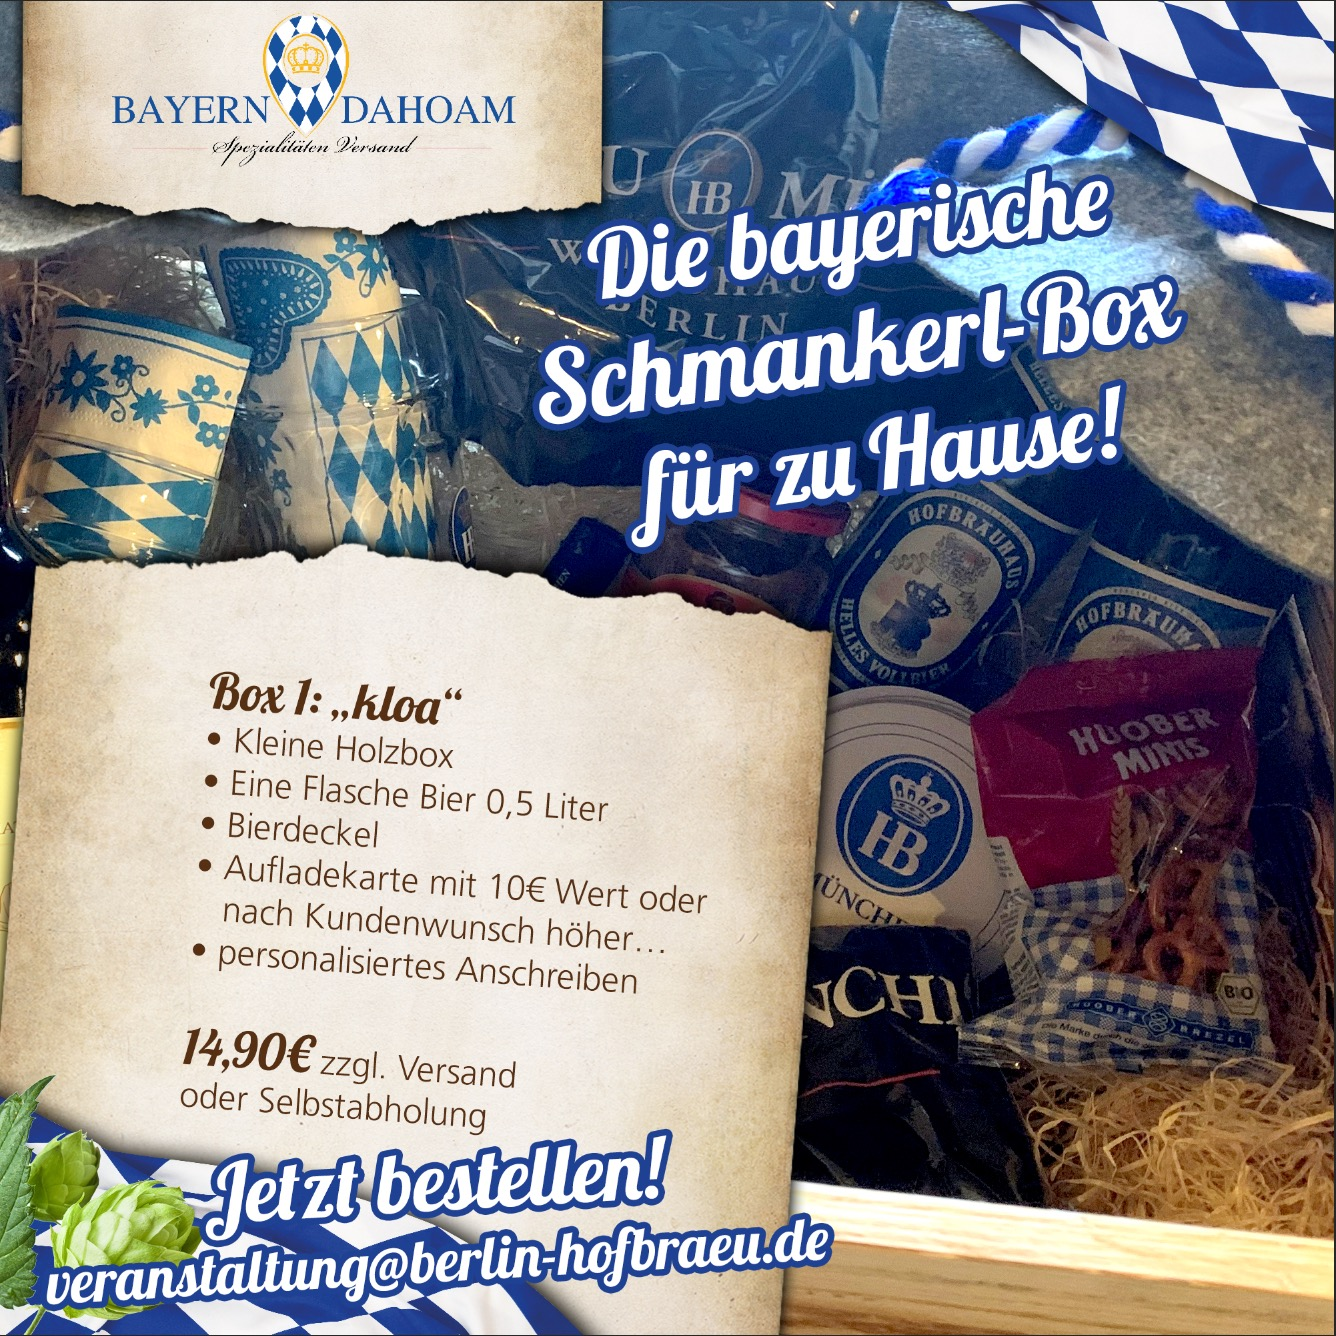 Bayern Dahoam delicatessebox